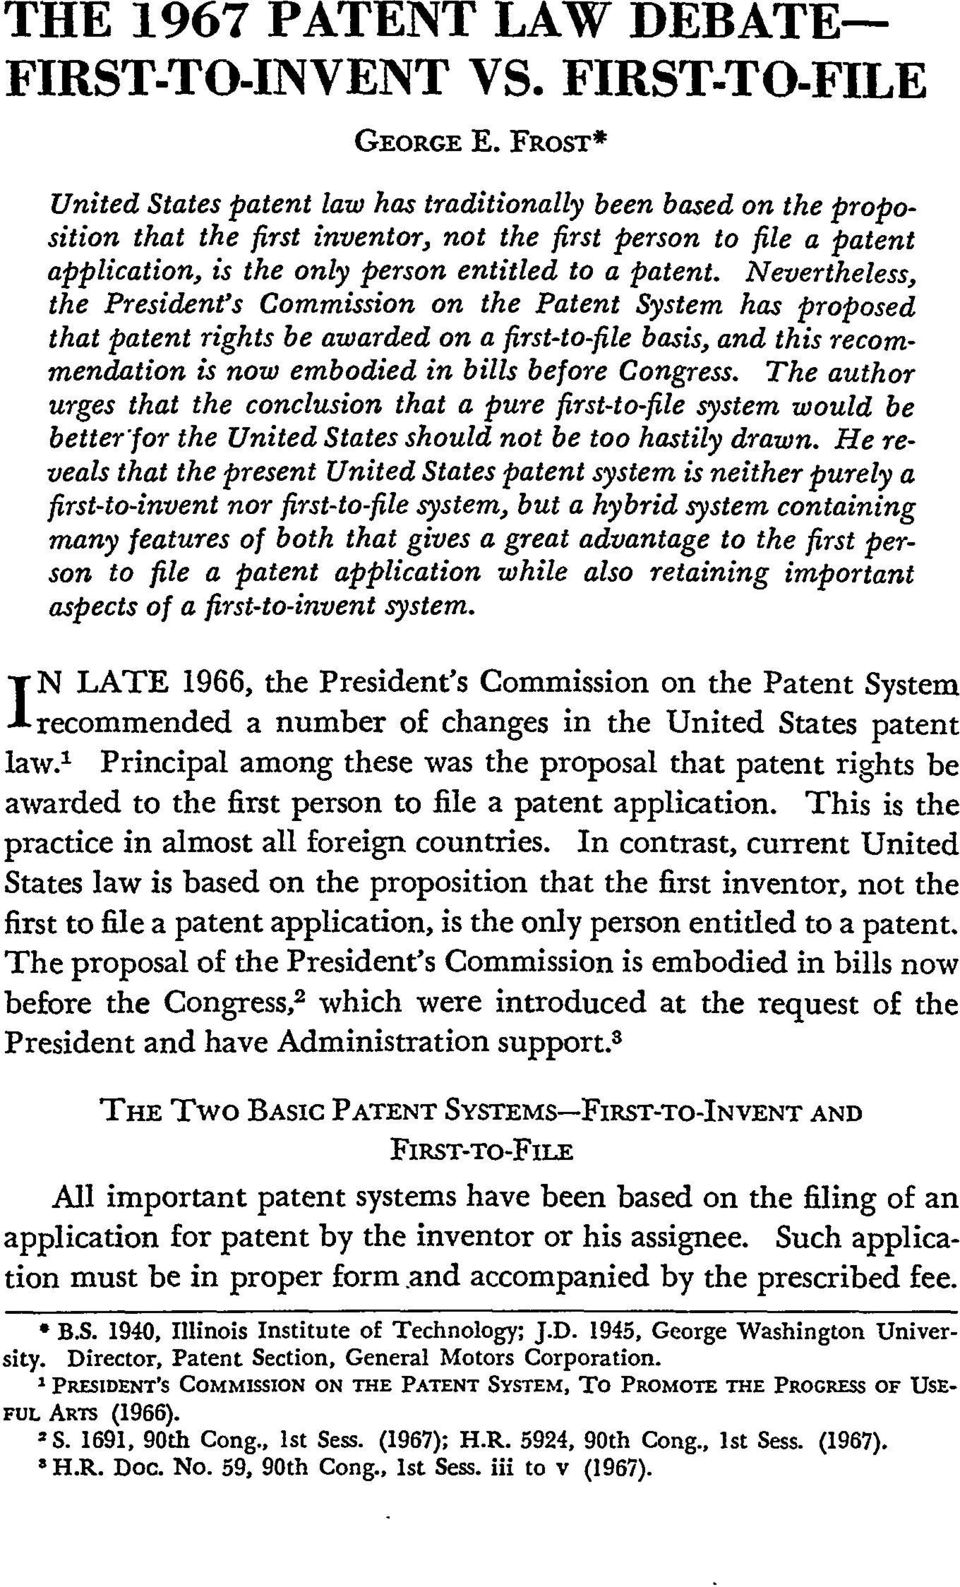 Nevertheless, the President's Commission on the Patent System has proposed that patent rights be awarded on a first-to-file basis, and this recommendation is now embodied in bills before Congress.